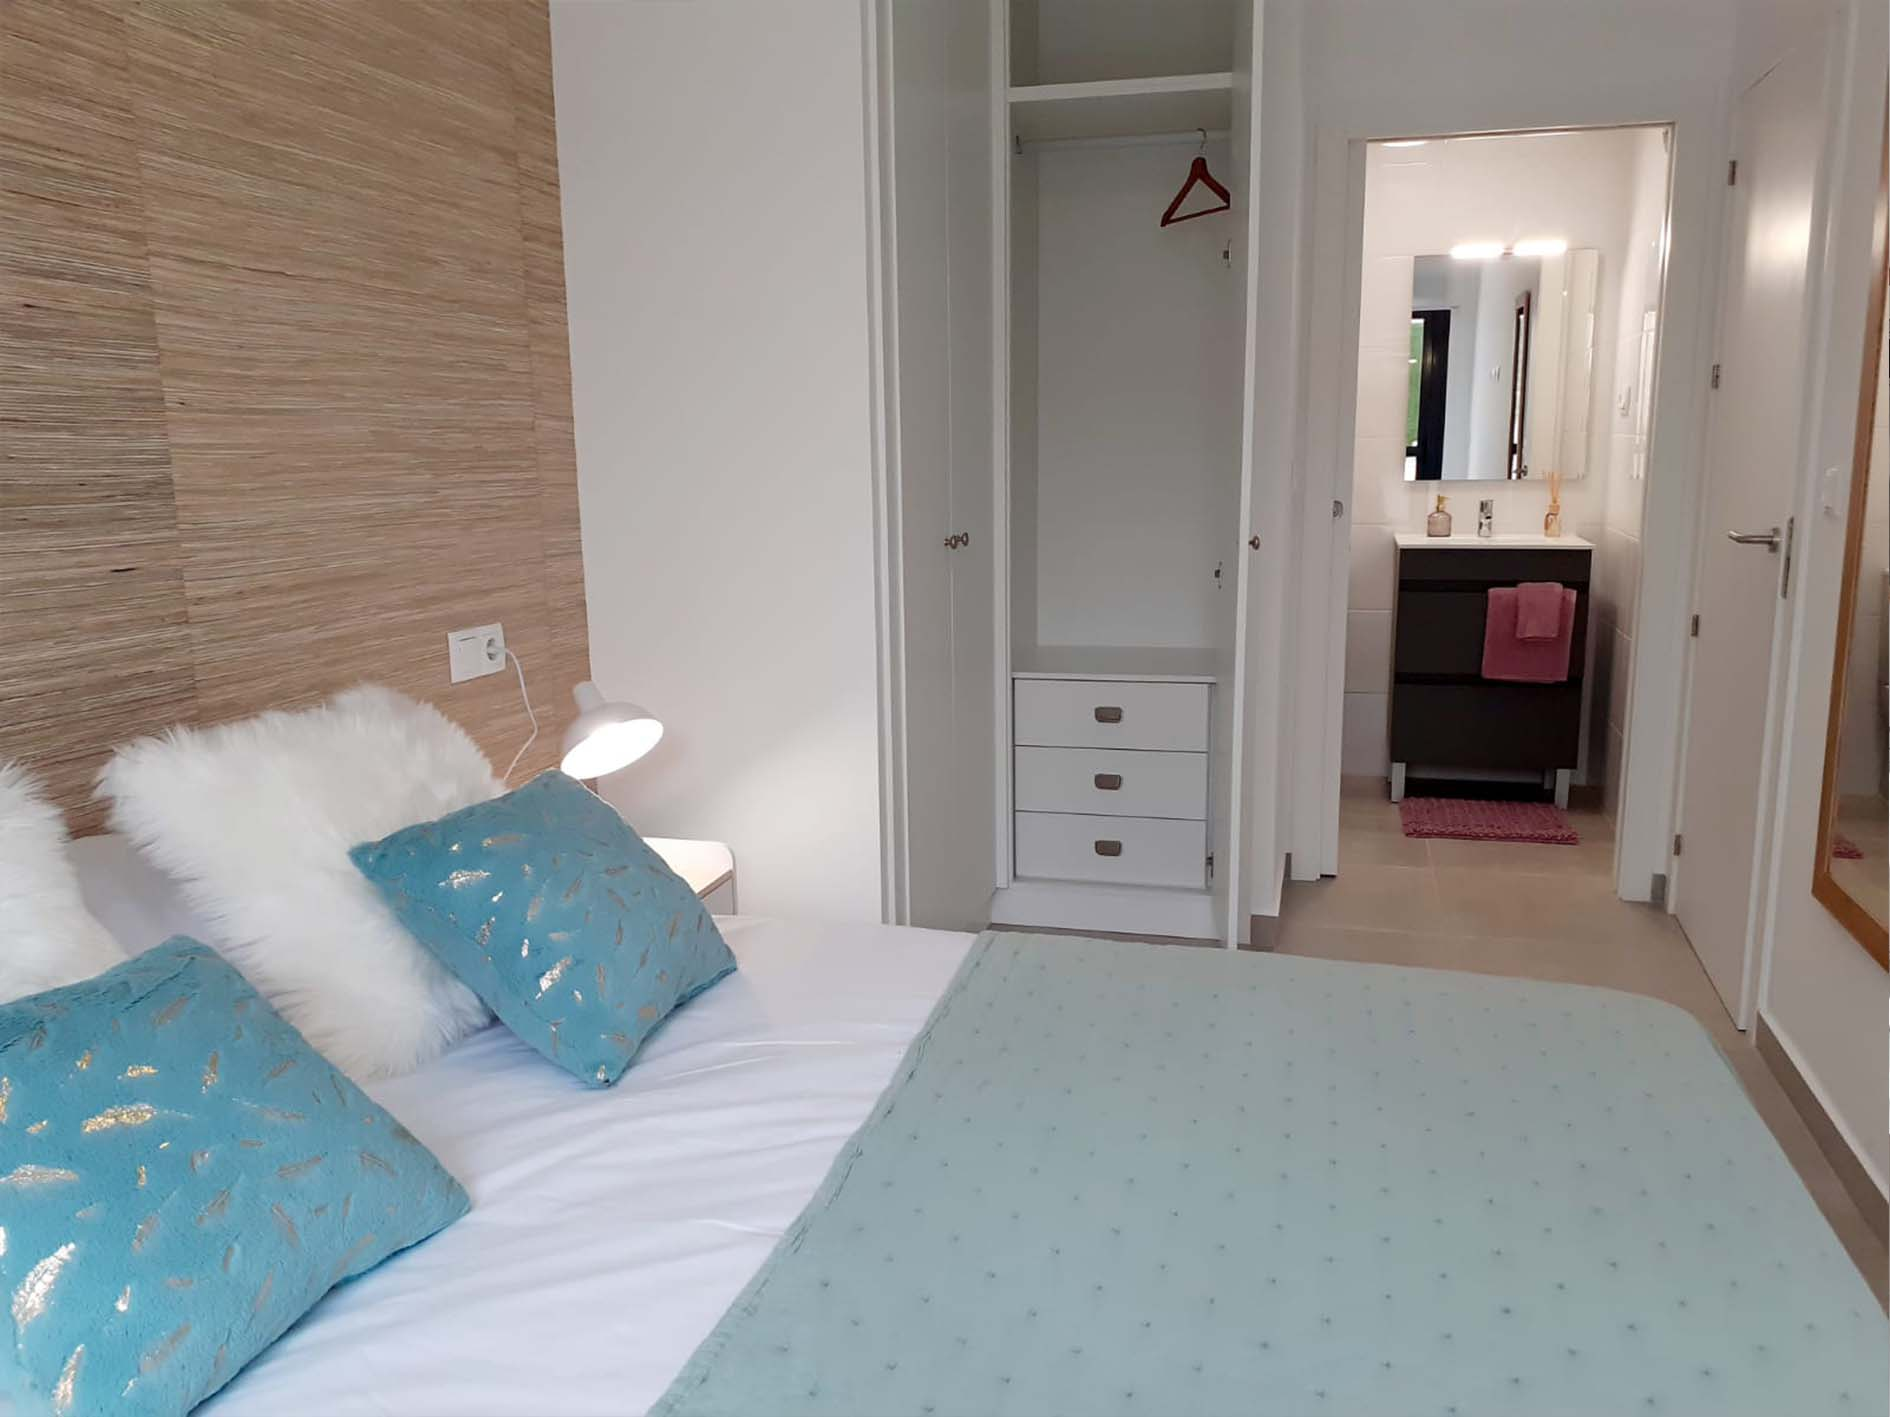 immobilier neuf espagne costa blanca on-d13 levansur home three chambre 1 sdb